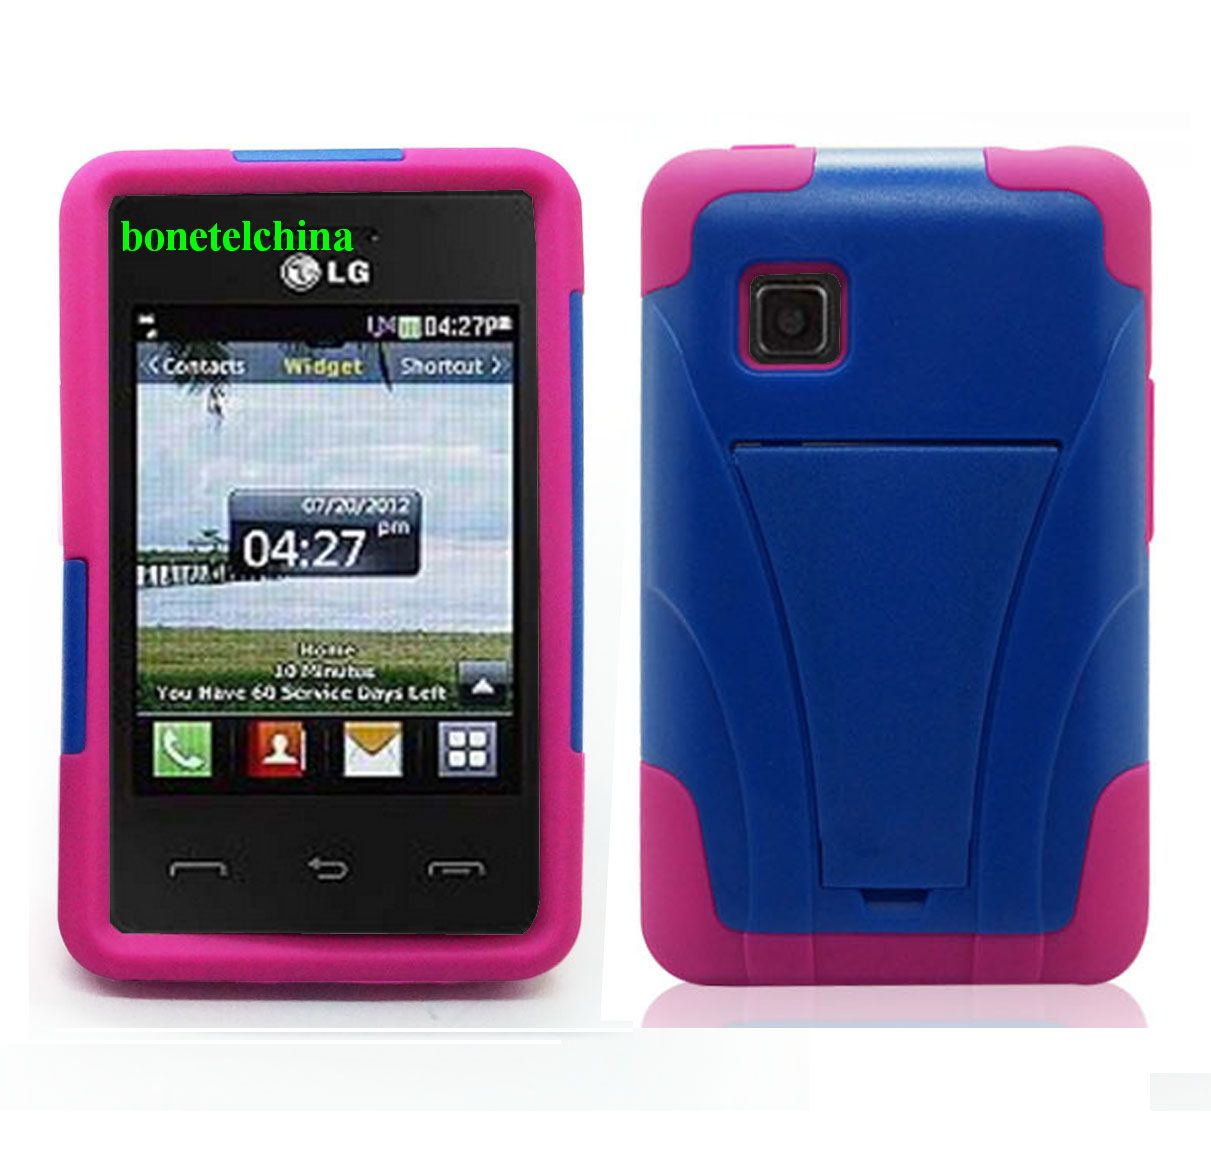 New kicktstand Hybrid combo cases cover for LG 840G Straight talk Net10 Tracfone